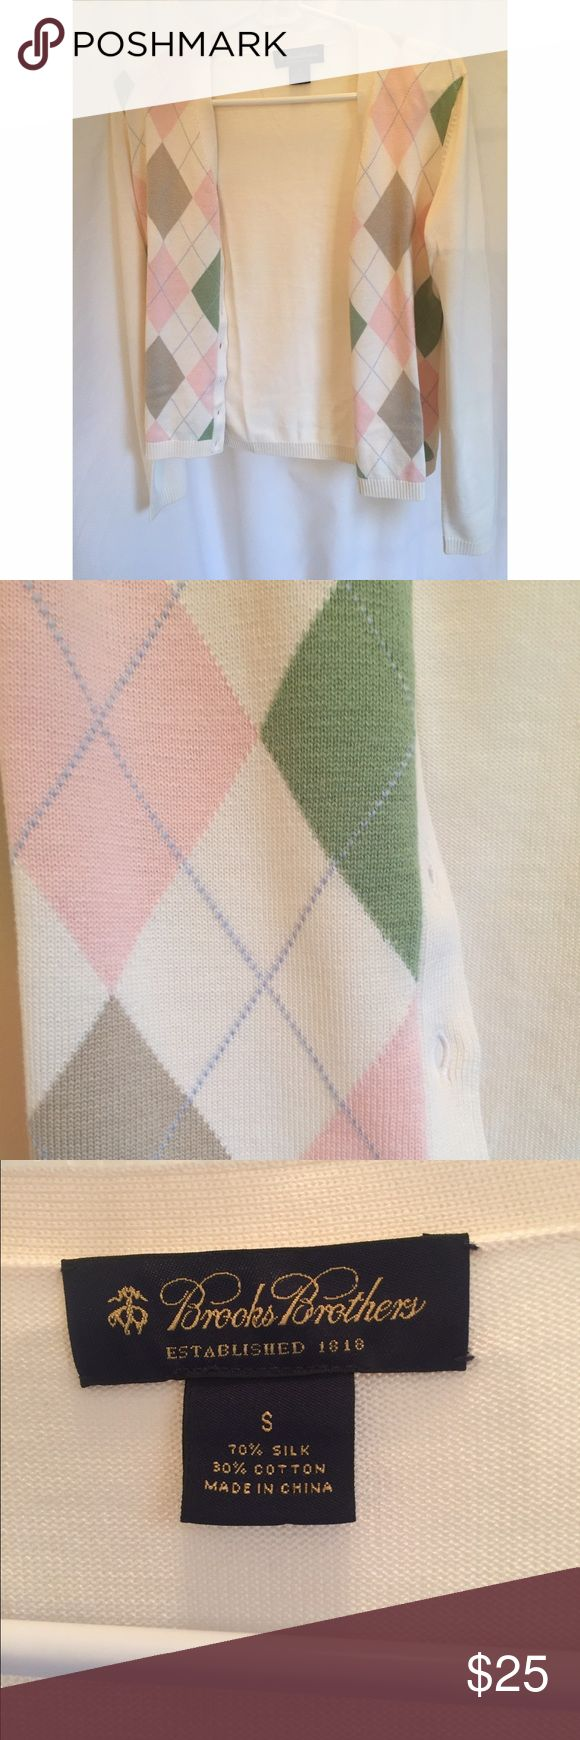 Brooks Brothers Preppy Silk Blend Argyle Sweater Pretty pastel sweater for the prep in all of us! The perfect layering piece- would look great with jeans and a casual shirt or a pencil skirt for work meetings. 70% silk, 30% cotton. Brooks Brothers Sweaters Cardigans